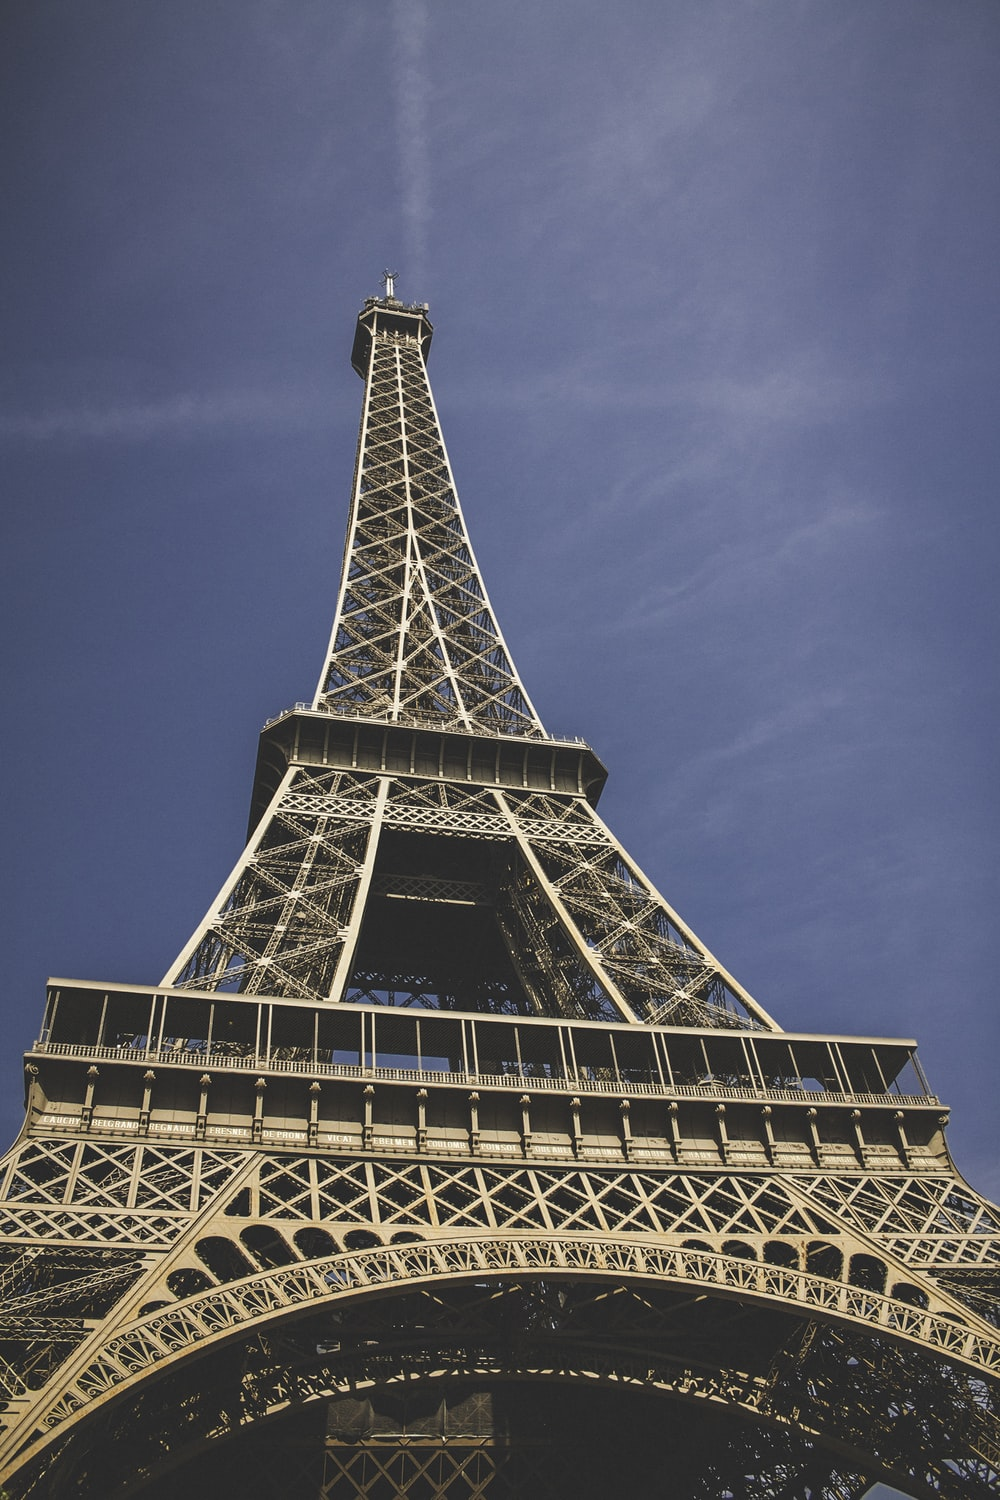 low-angle view of Eiffel Tower, Paris